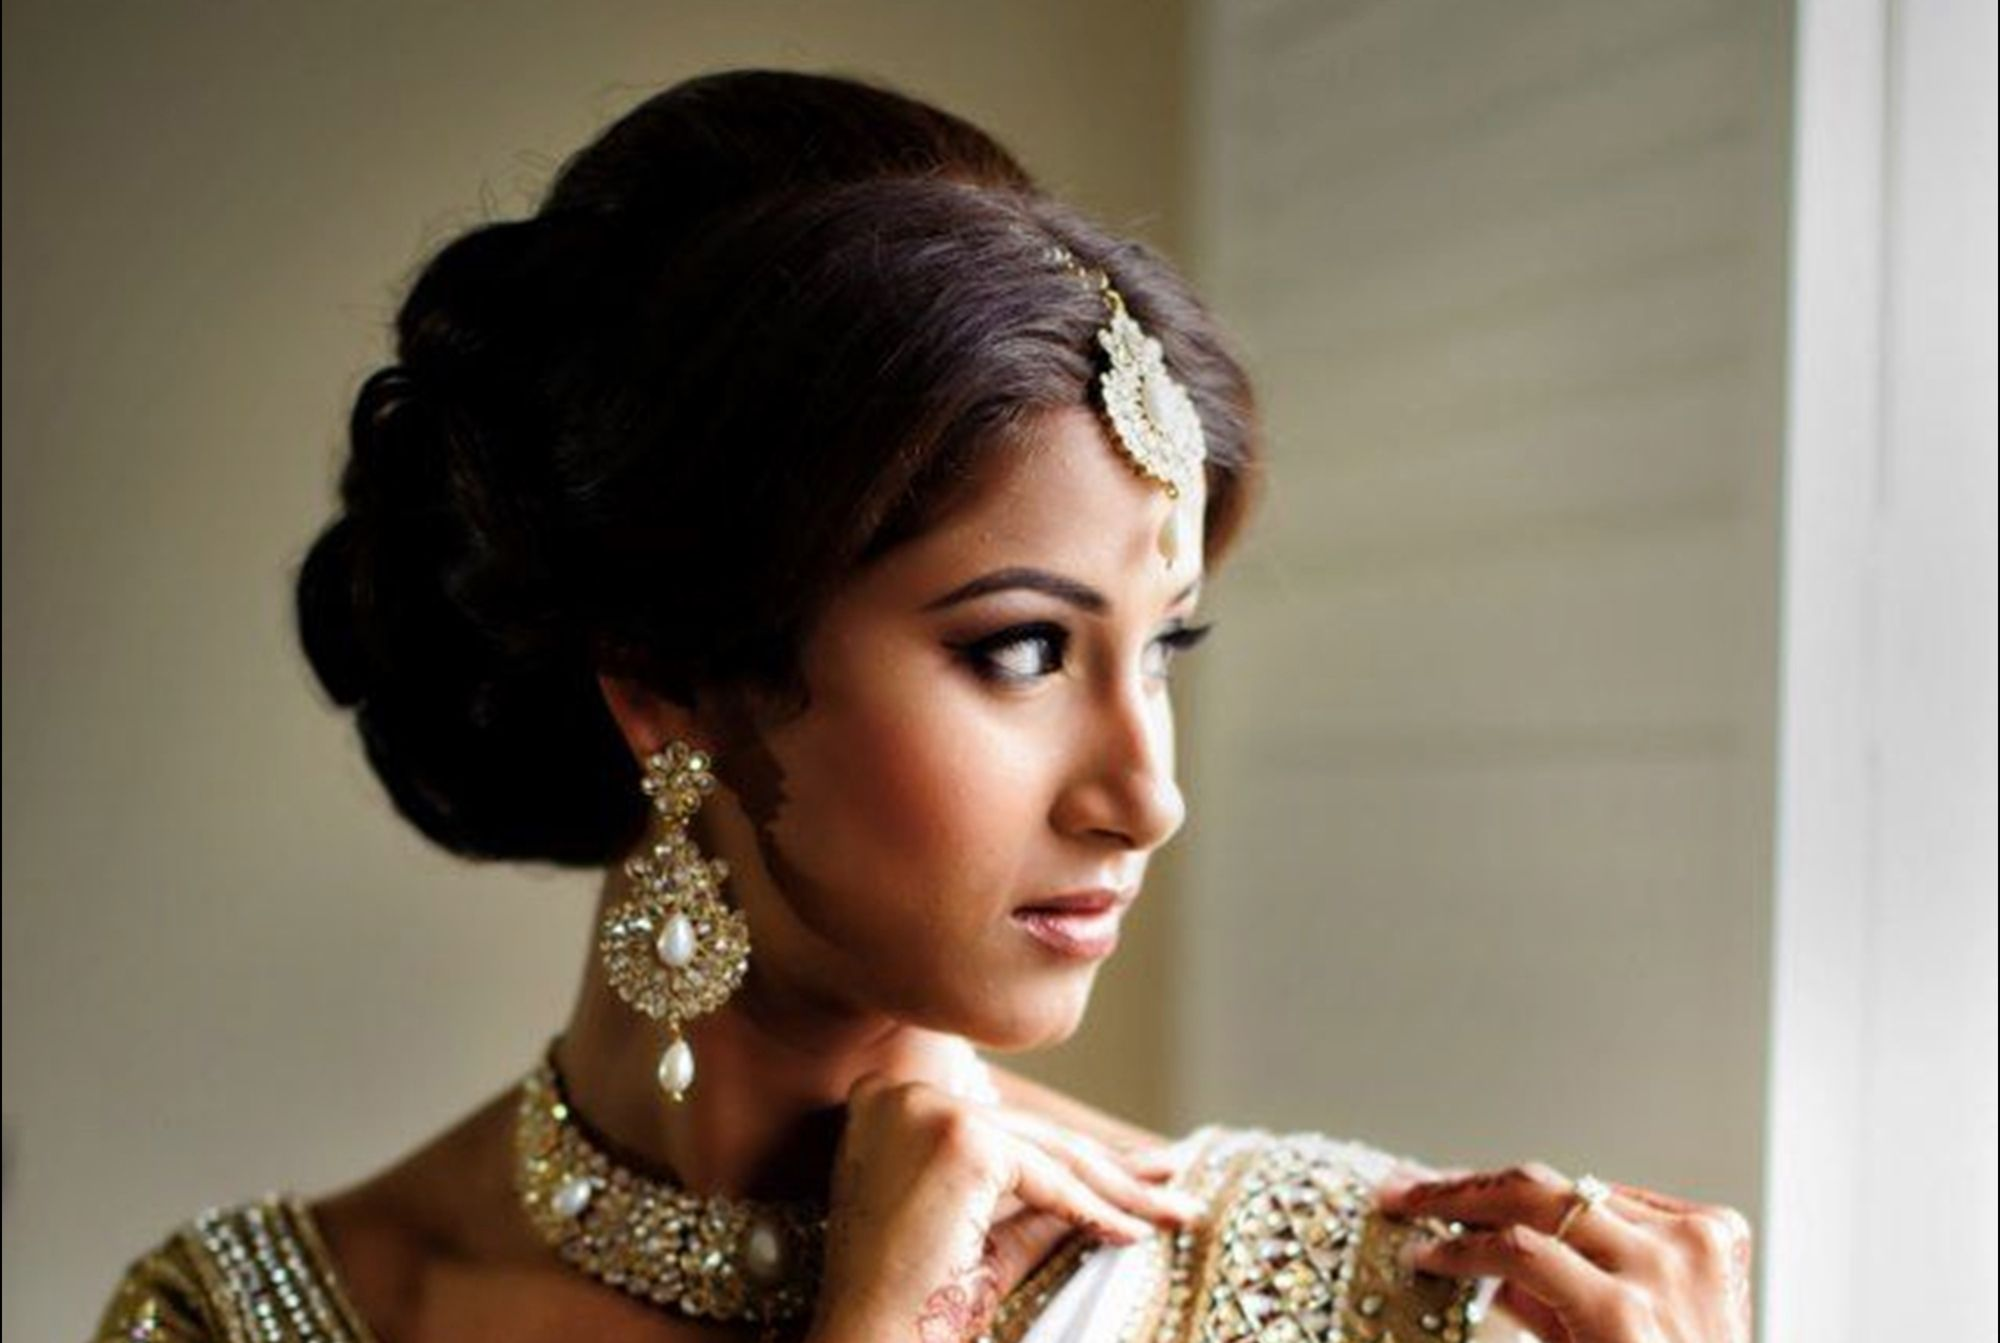 pin by aneesha sinha on hair styles in 2019 | bridal hairdo